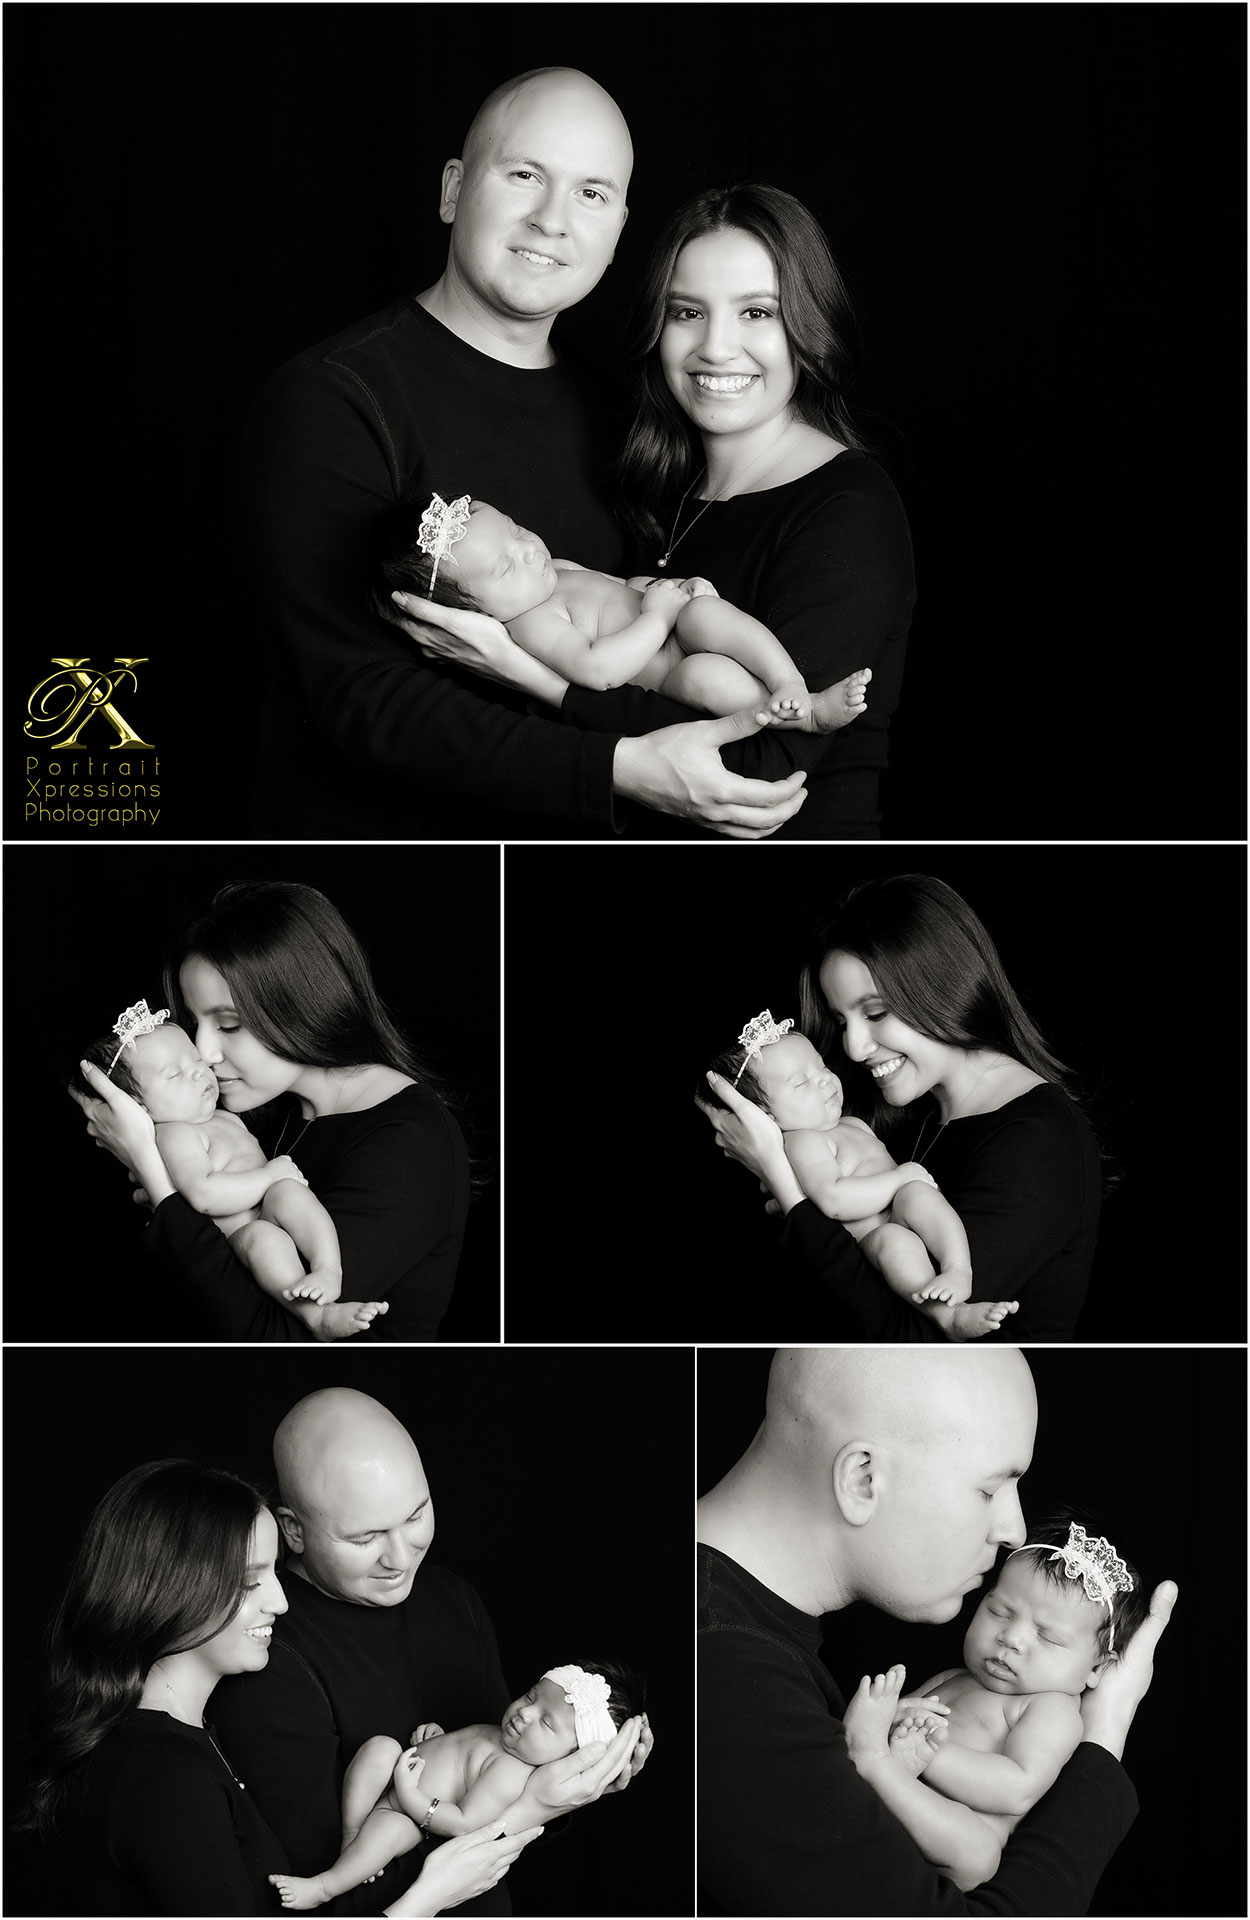 baby and parents relationship portraits